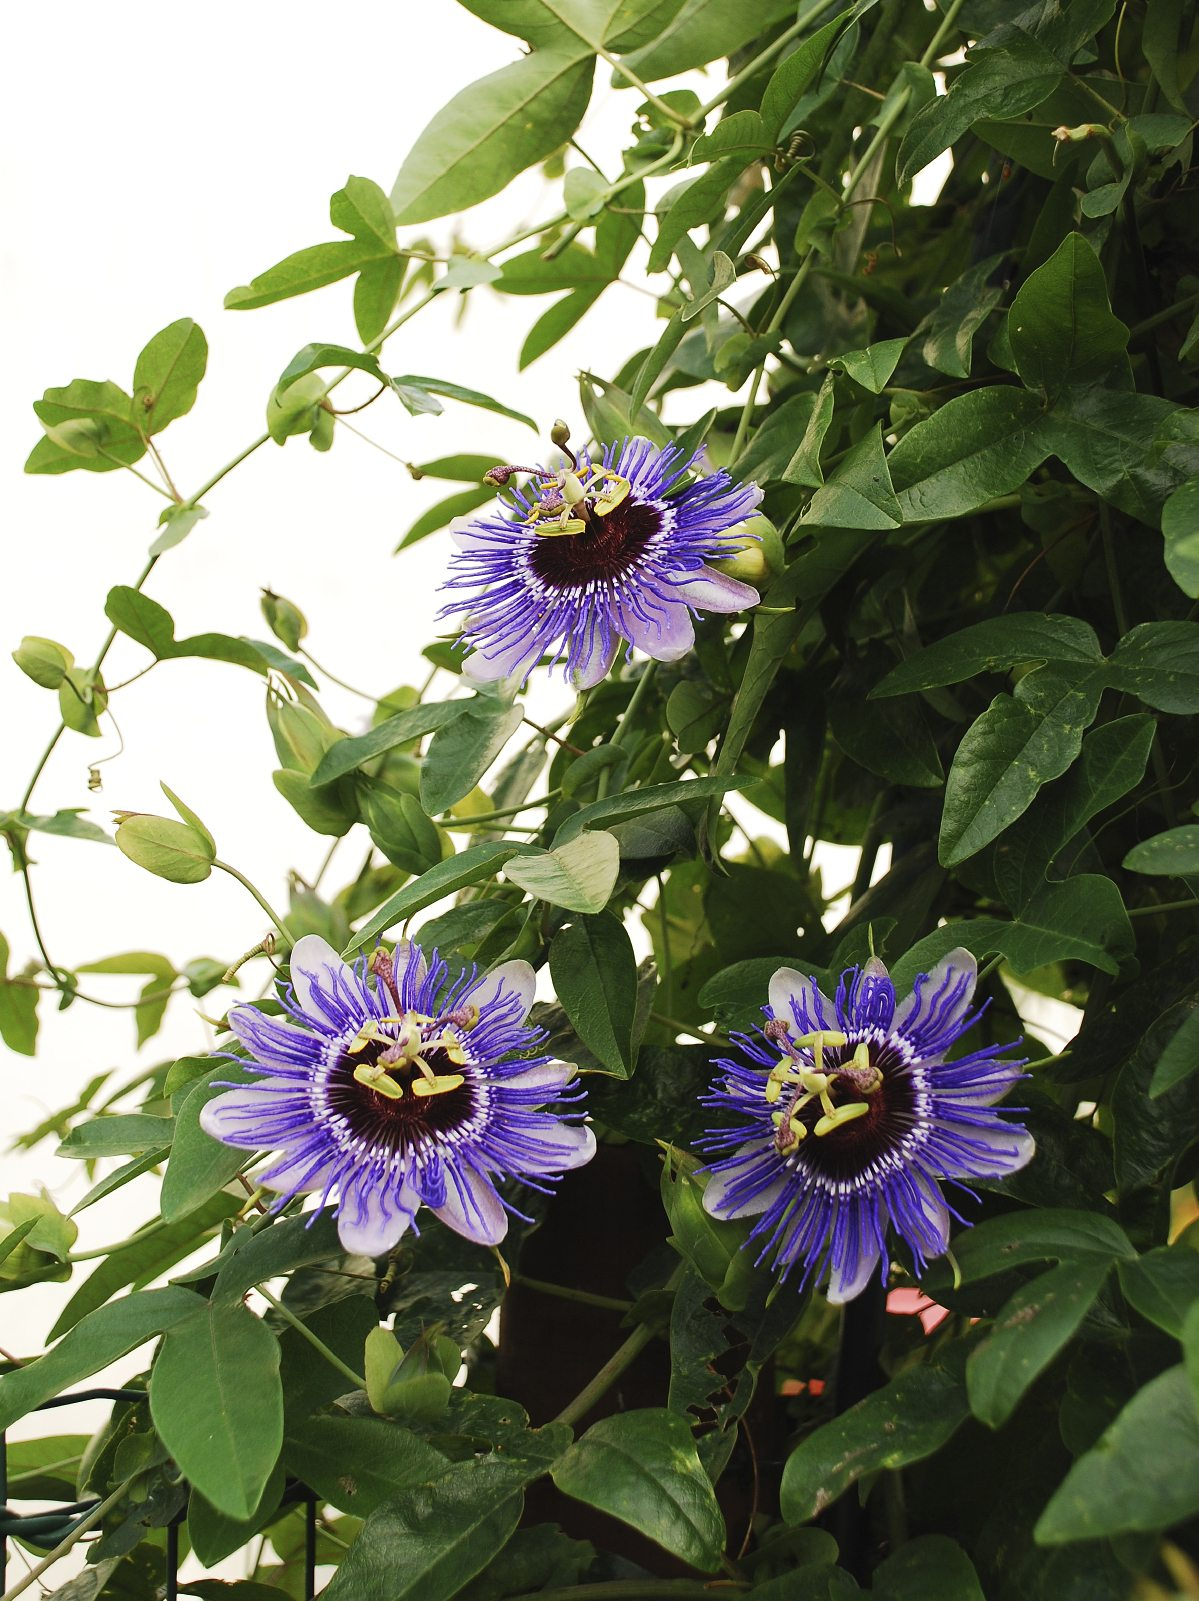 Feeding Passion Flower Vines – How To Fertilize A Passion